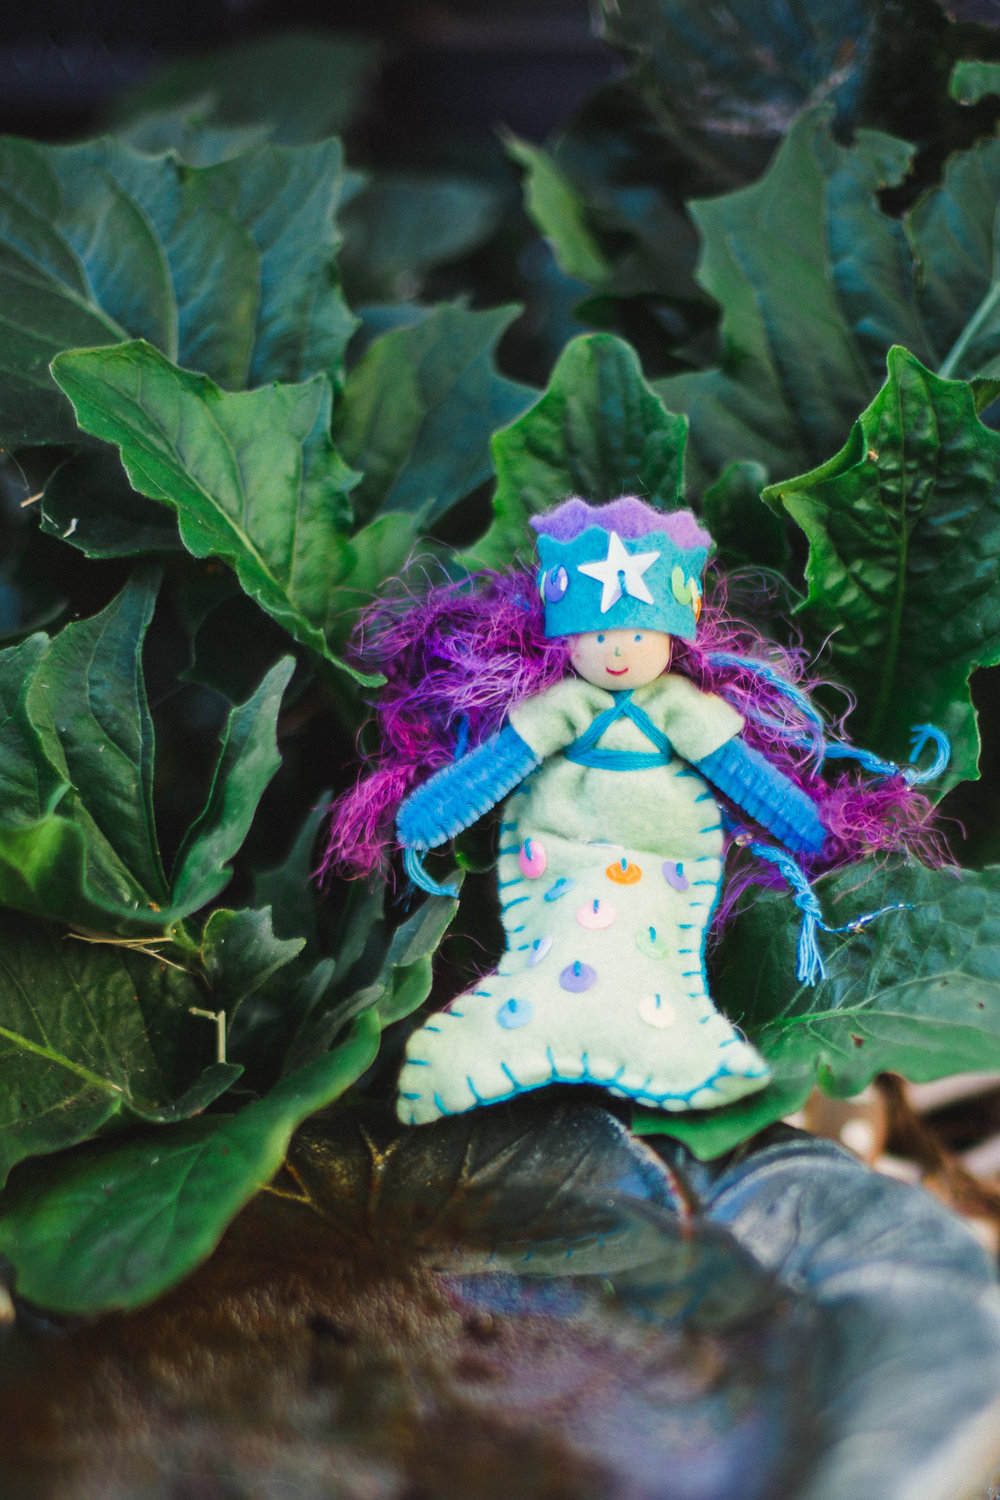 MermaidForestFairyCraftsAug2016-2.jpg